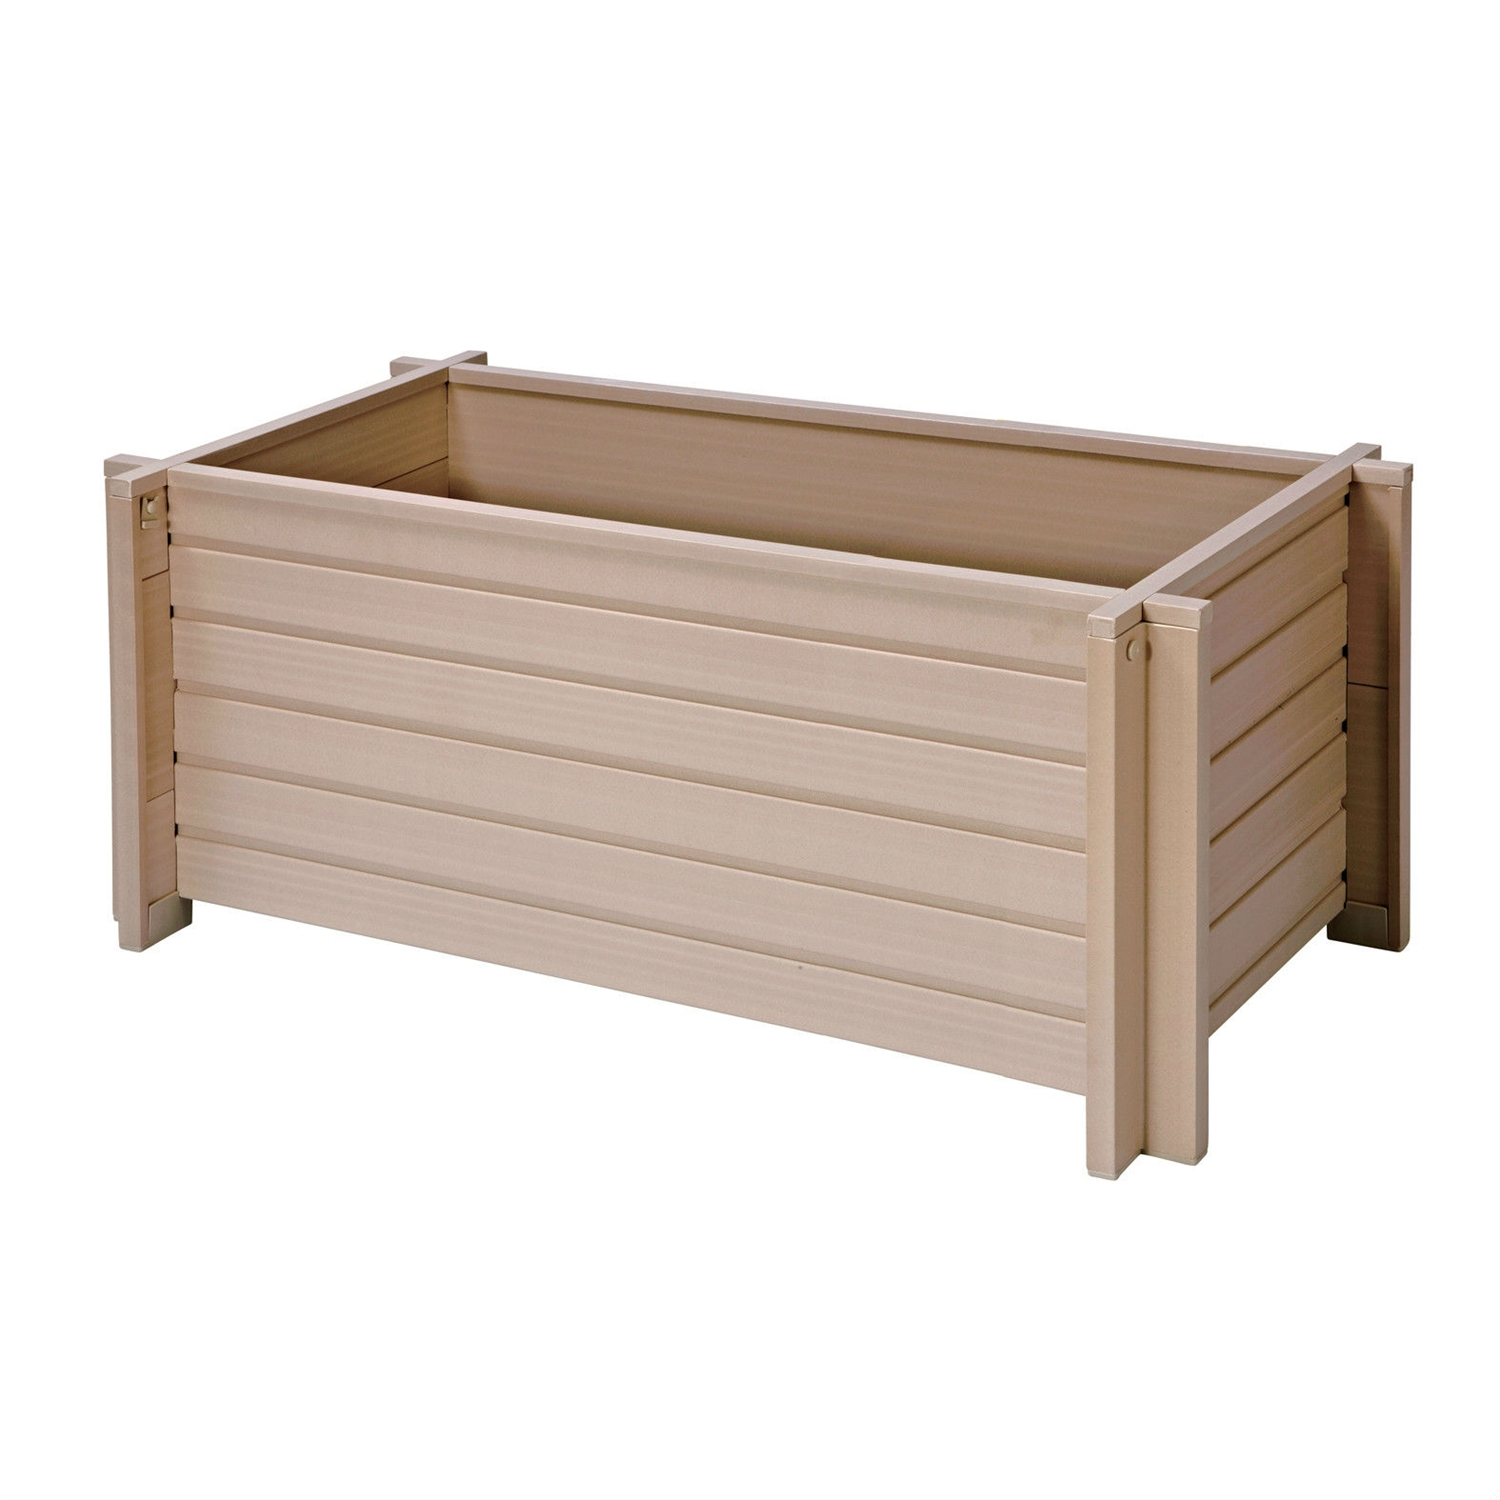 30-inch Wide Rectangular Planter Box, EFRP5931 :  This 30-inch Wide Rectangular Planter Box would be a great addition to your home. It has durable and water repellent and no maintenance required. Doesn't warp, crack, split, twist; Durable and water repellent; Outlast wooden planters at least 4 to 1; No maintenance required; Looks great for years.